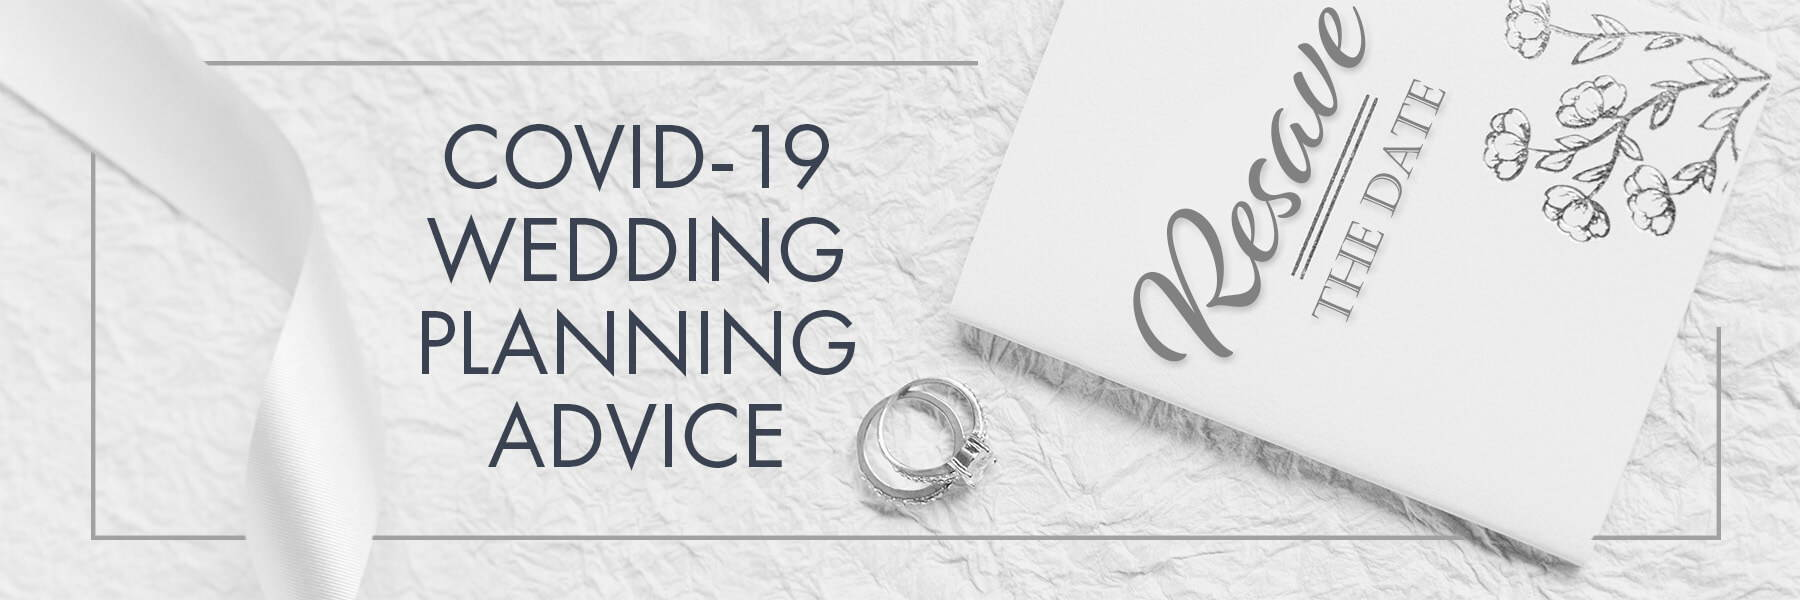 COVID-19 Wedding Planning Advice